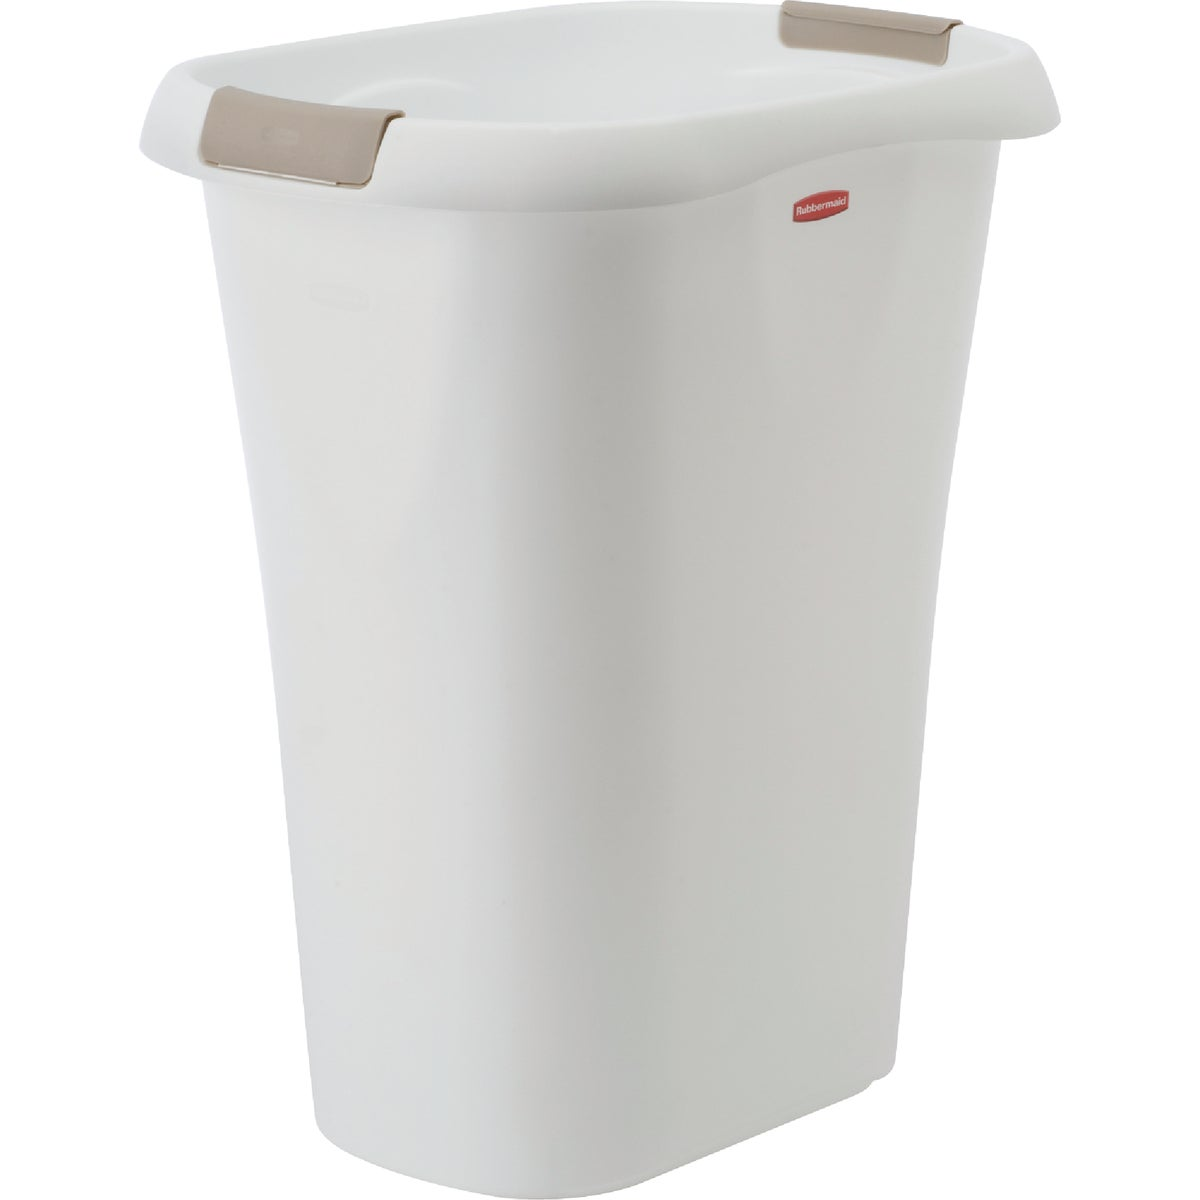 32QT WHITE WASTEBASKET - FG5L6000WHT by Rubbermaid Home